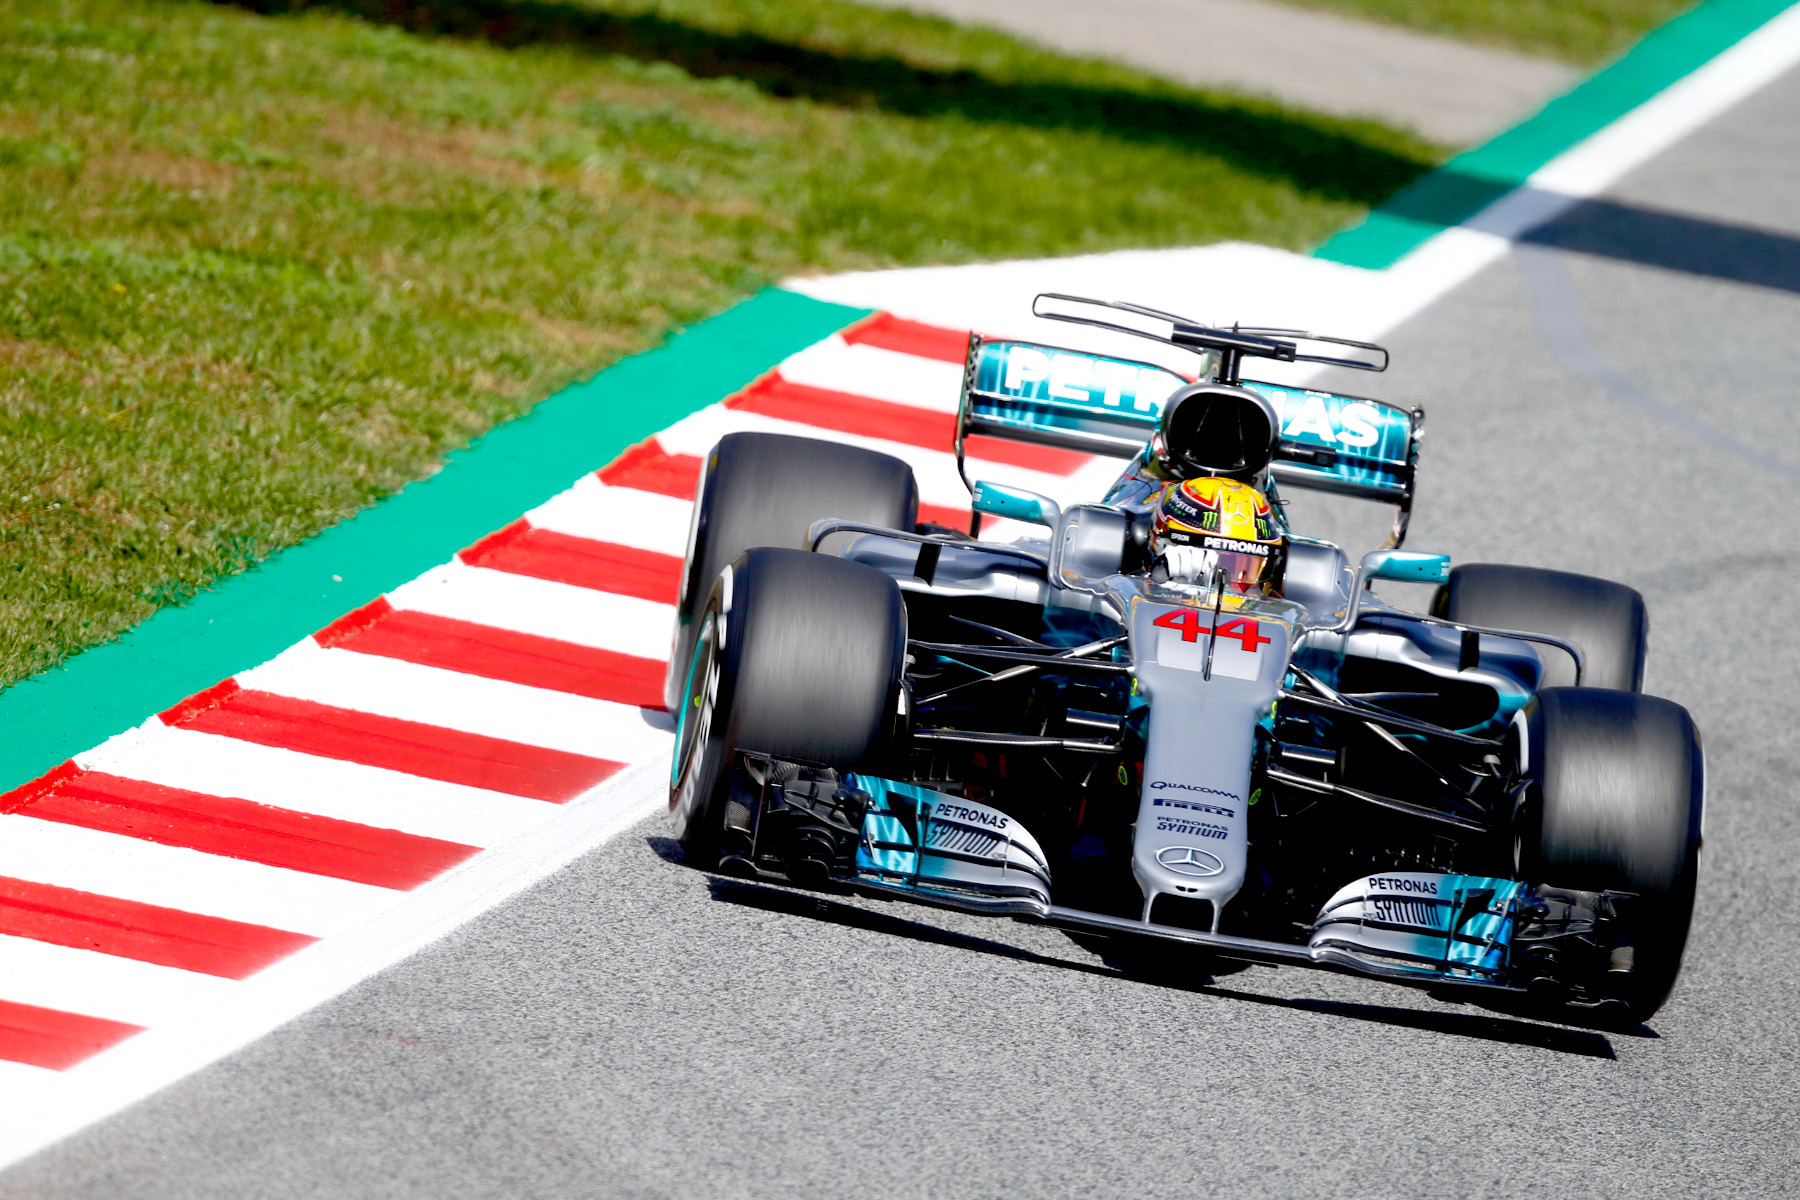 Lewis Hamilton drives his Mercedes to pole position at Spain's Circuit de Barcelona-Catalunya